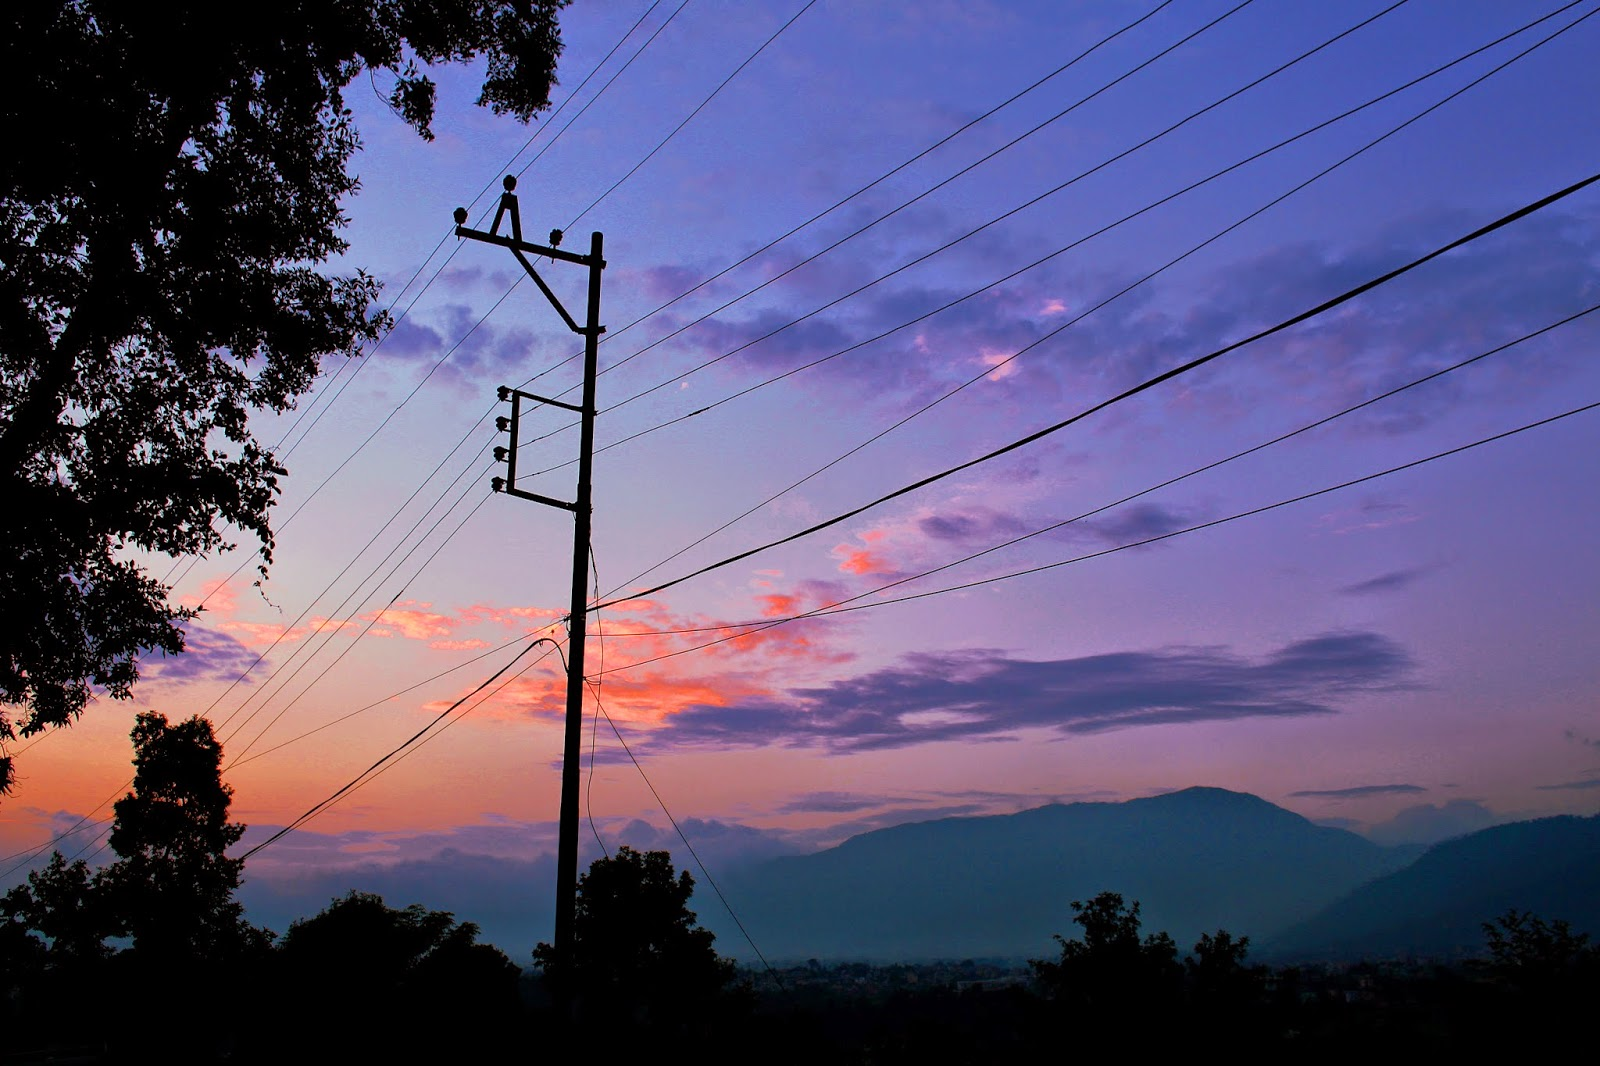 Kathmandu sunset, Kopan, view, nature, power lines